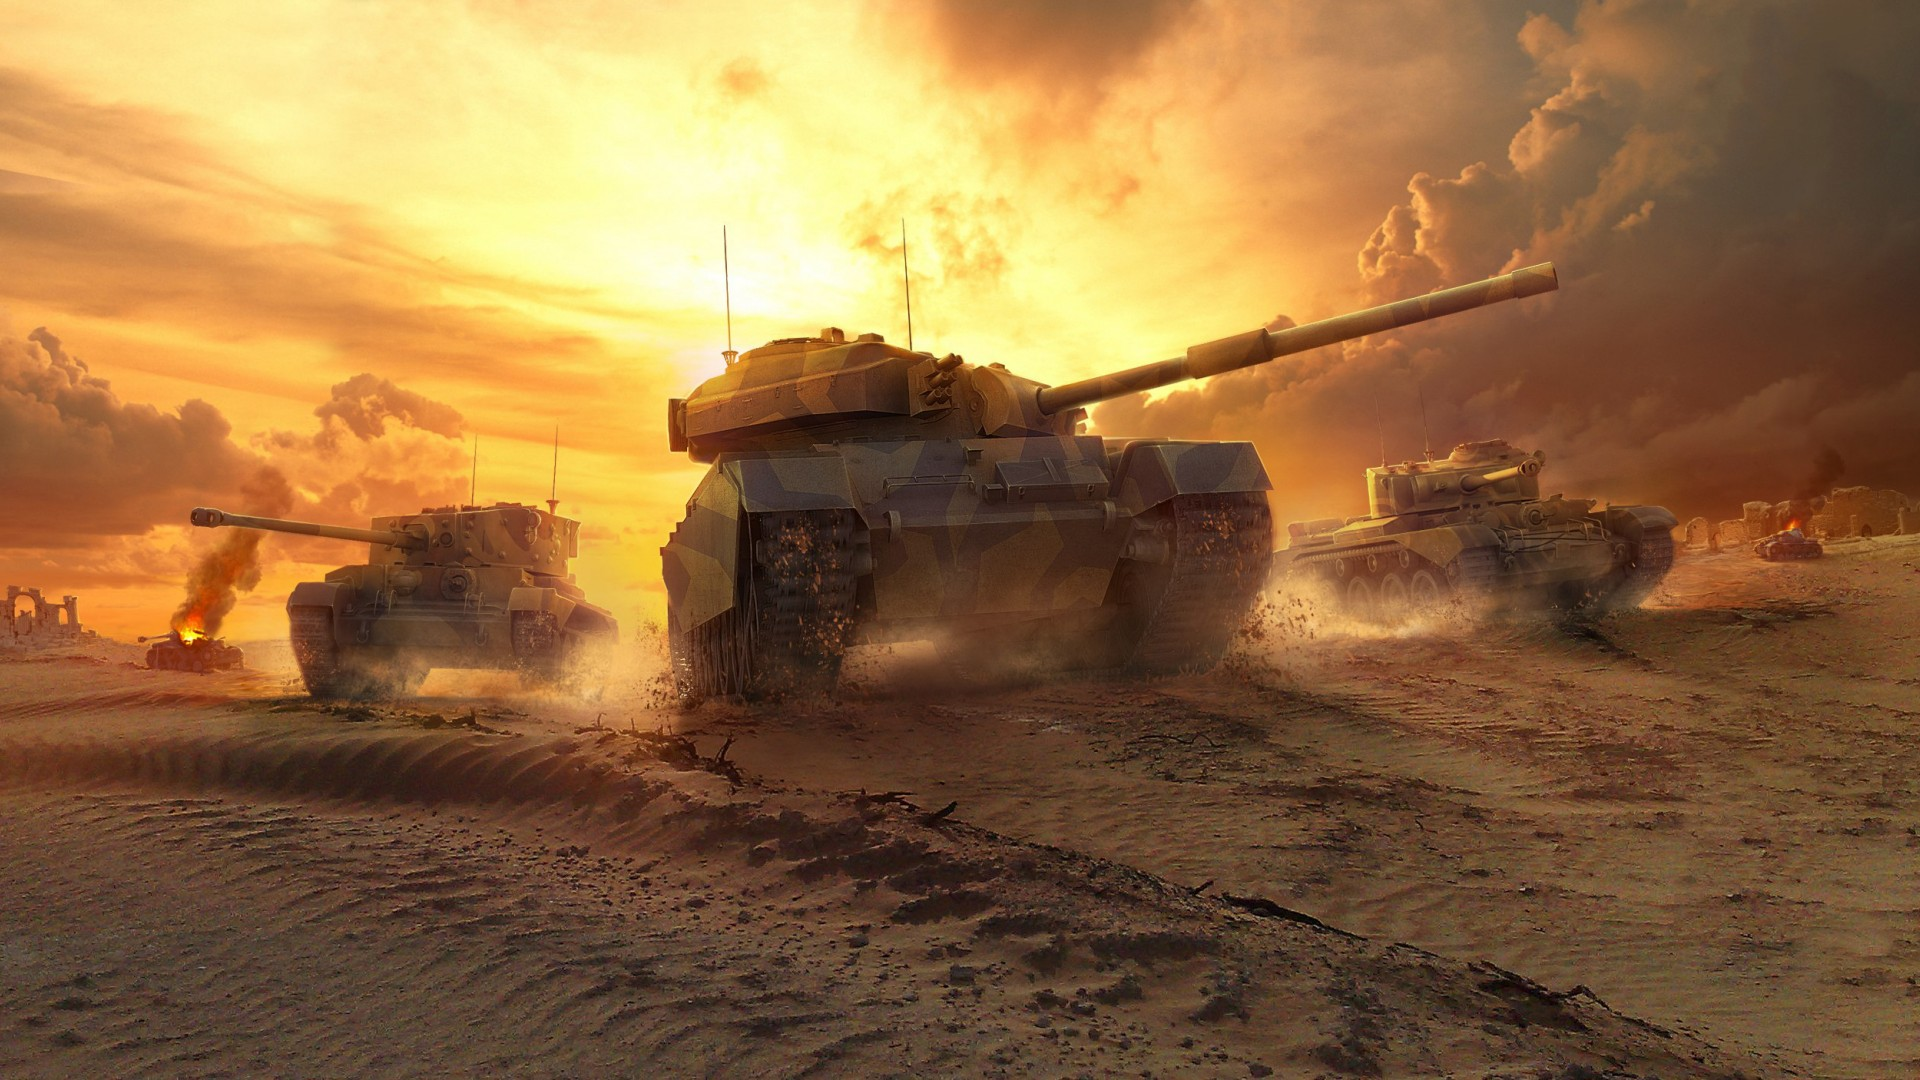 New 3d Hd Wallpapers For Pc World Of Tanks Wallpapers Pictures Images